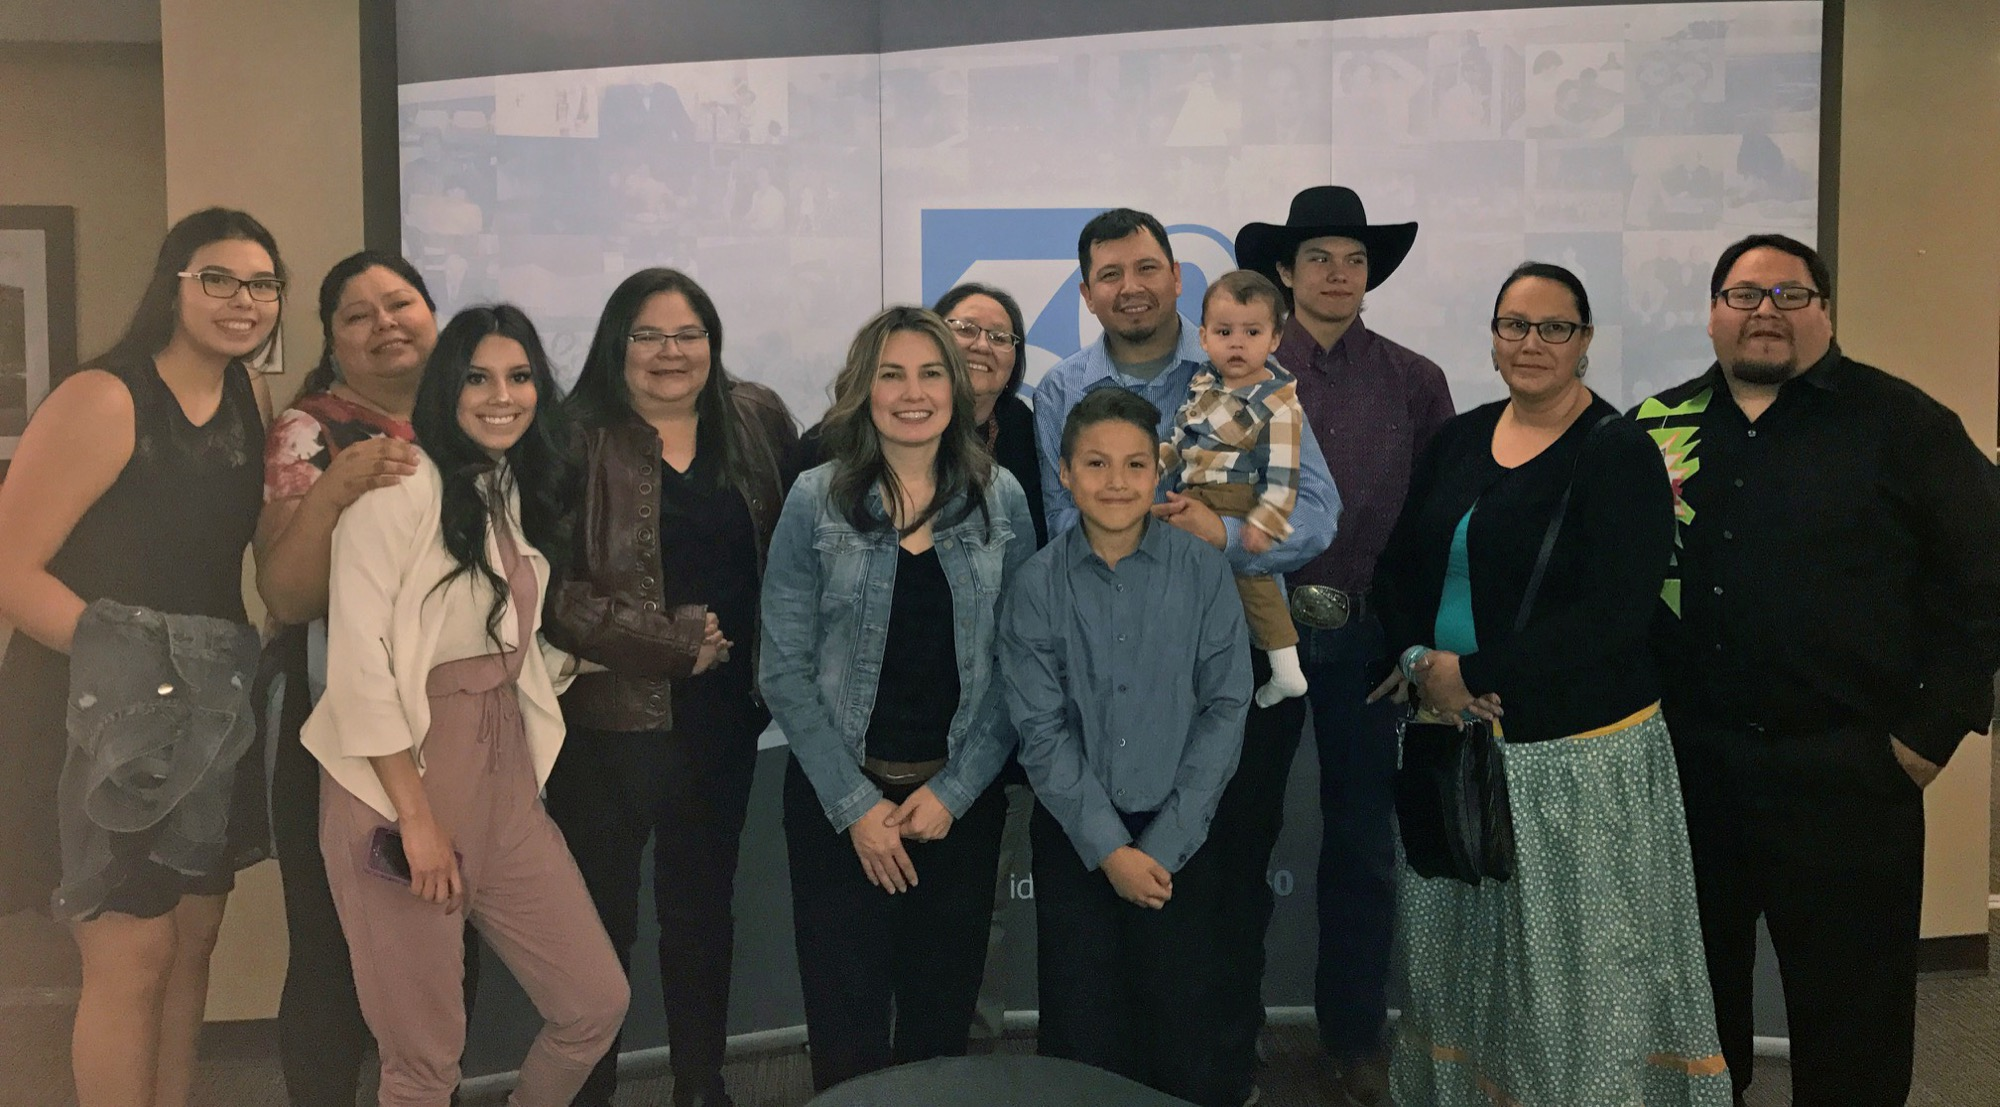 Charlton Weasel Head's family is shown (left to right): daughter Taylor, sister Zana, daughter Kirbi, sister Roana, wife Stacey, mother Gloria, son Talon, Charlton Weasel Head holding grandson Chaseton, son Bailey, sister in law Roxy and brother Lionel. (Submitted)